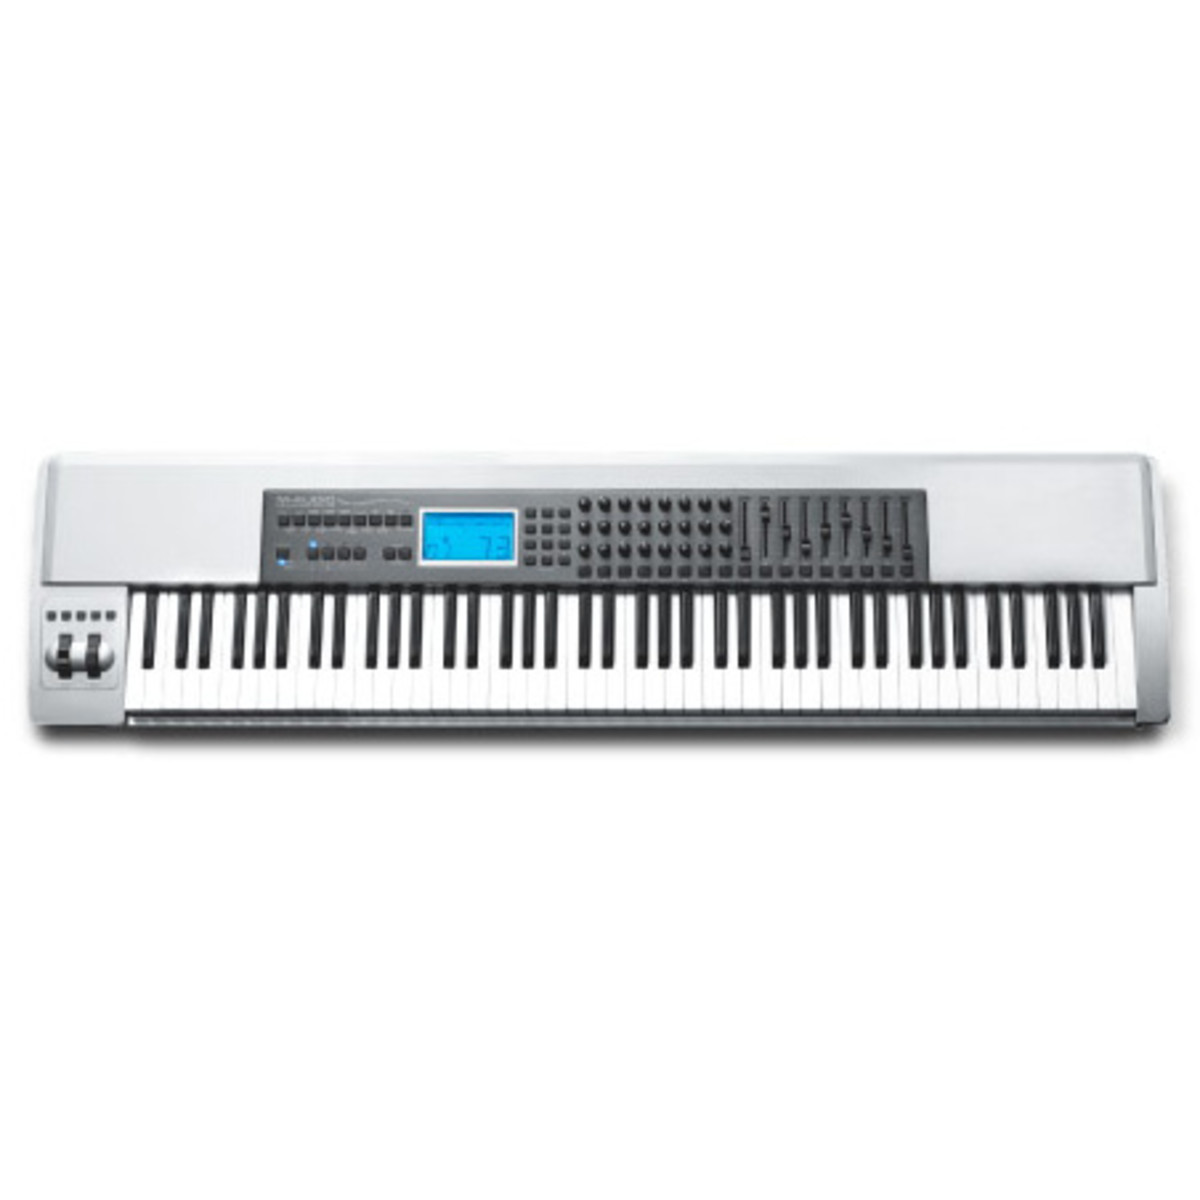 The Spinoff Music m audio 88 note keystation keyboard really